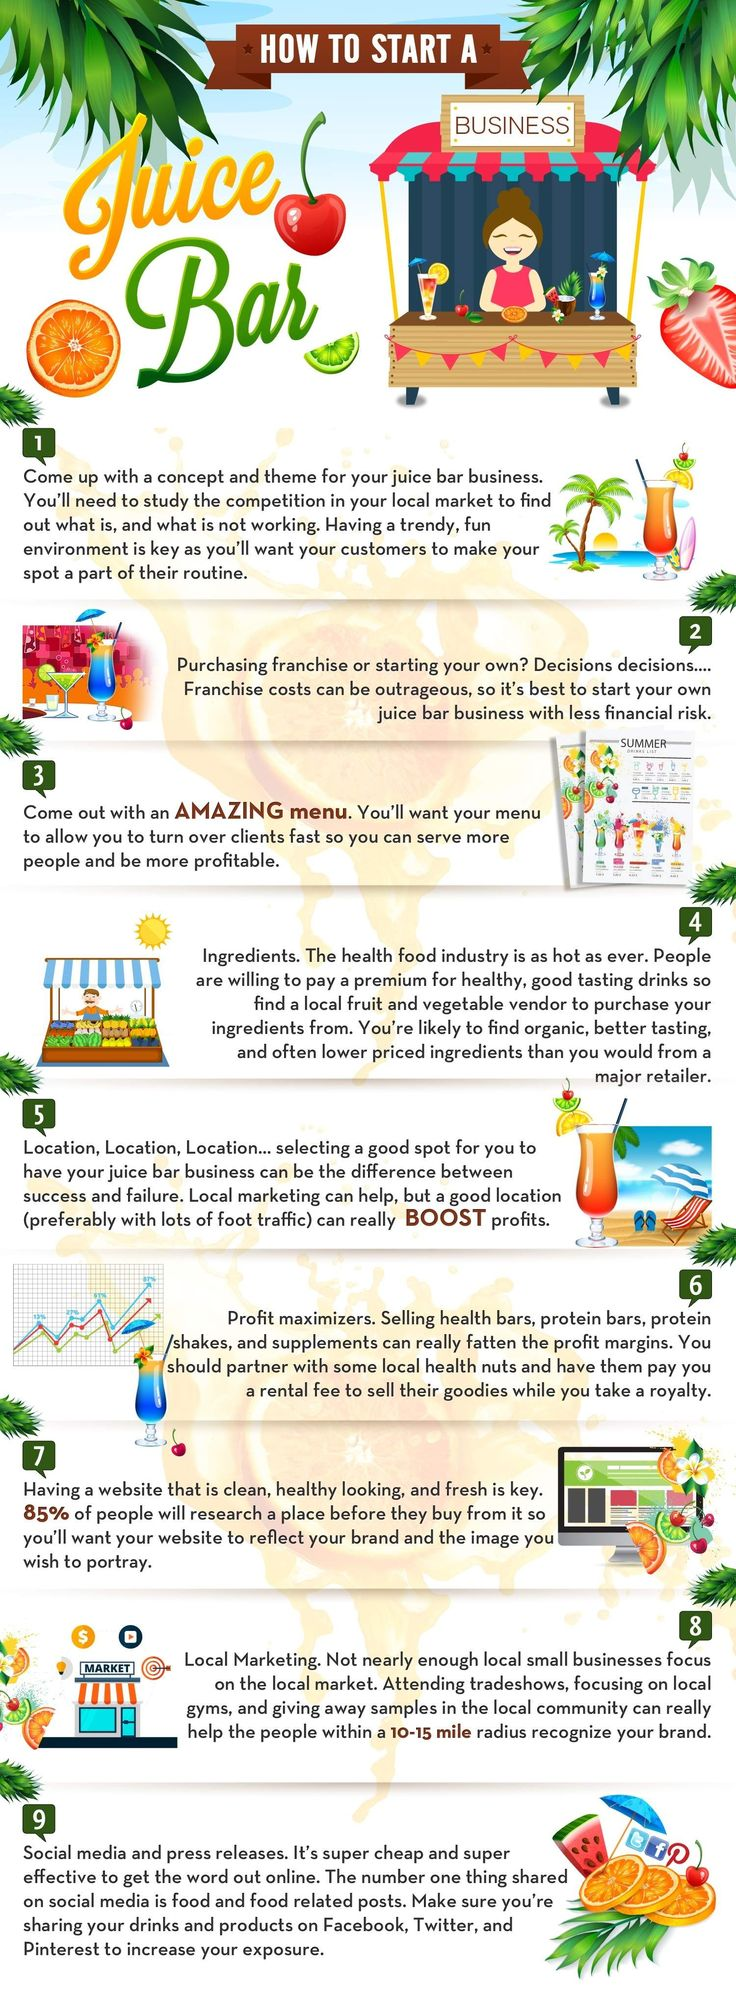 how to start a juice bar business infographic